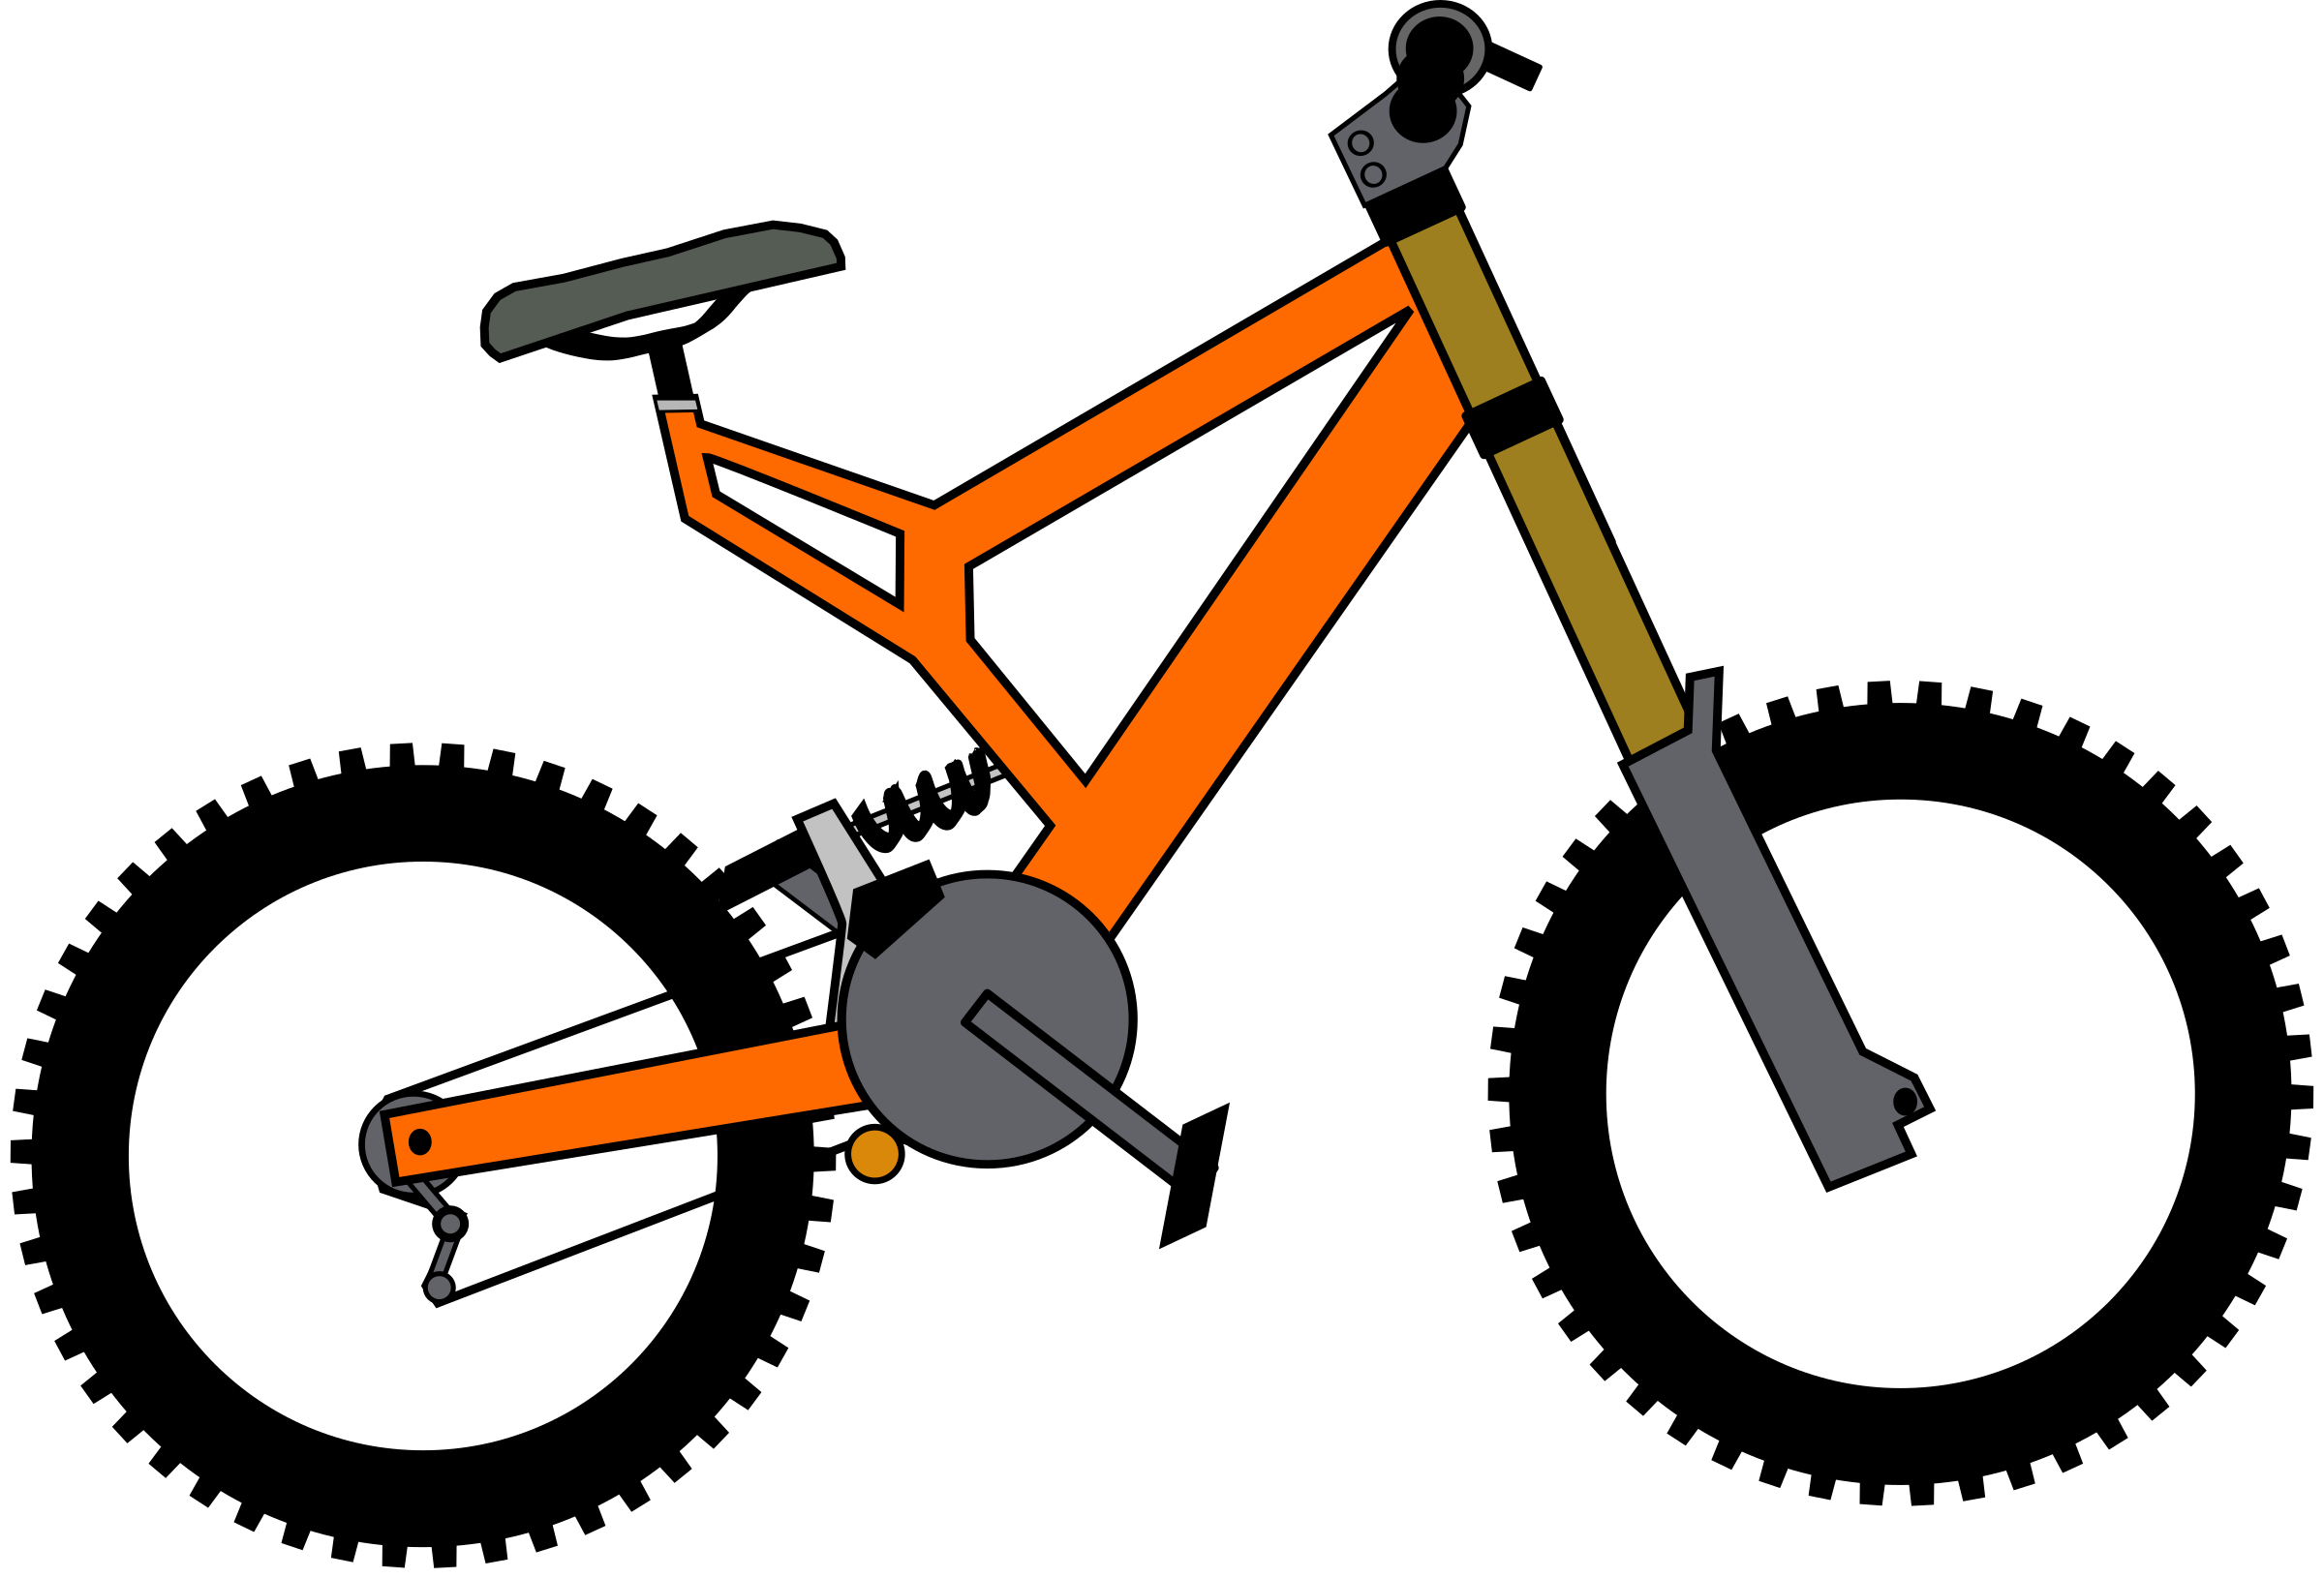 Big image png. Bike clipart animated